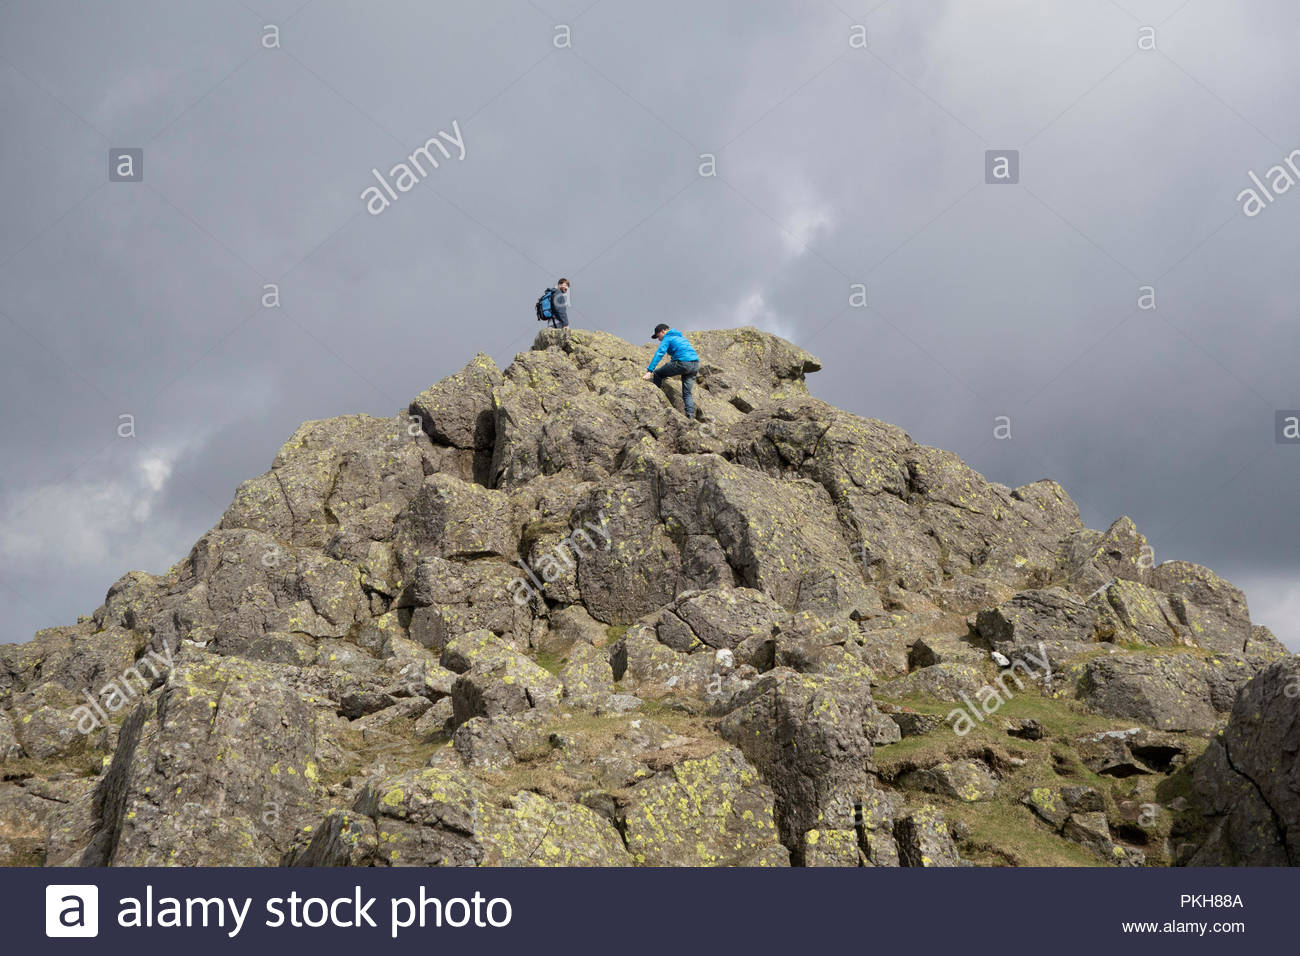 Scrambling on the summit of Dow Crag in the Coniston Fells in the English Lake District. - Stock Image